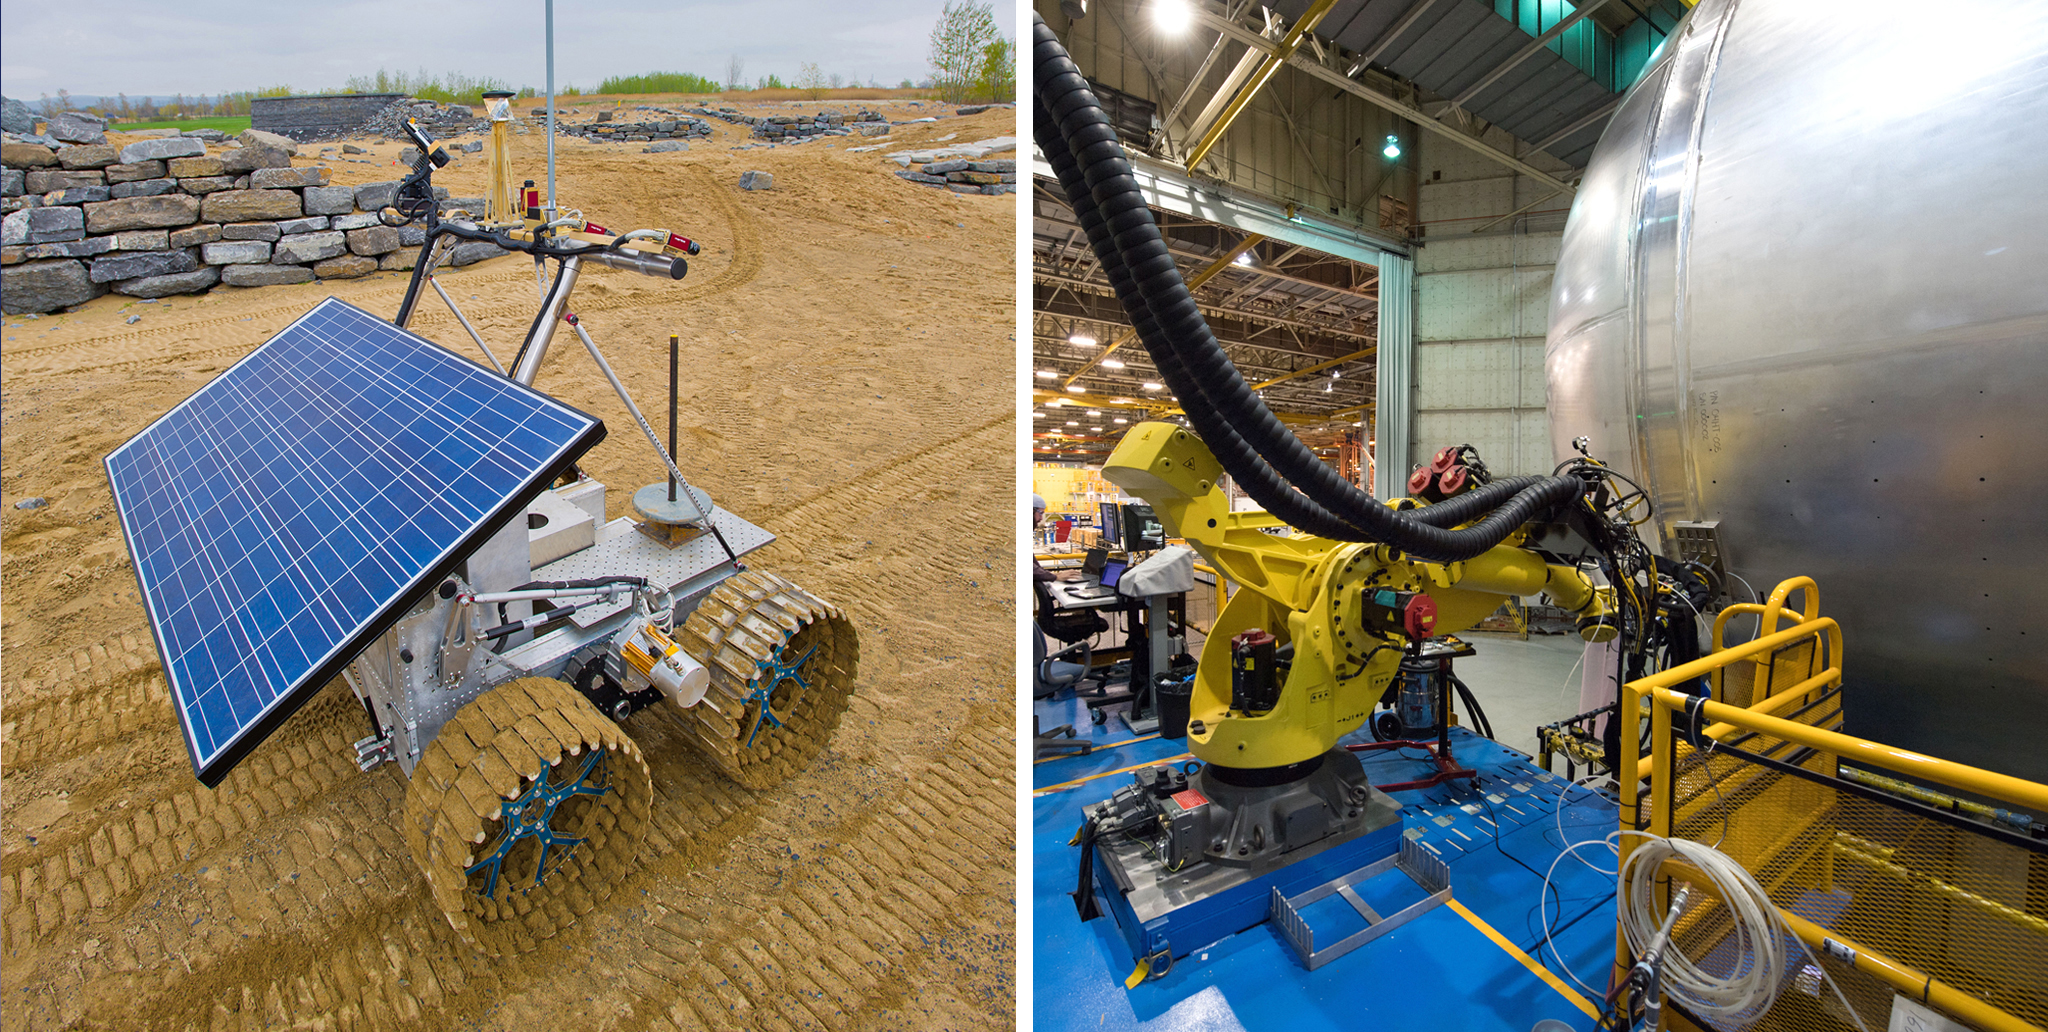 "Left: The Artemis Jr. rover holds exploration instruments. In 2012, this was used to perform two ""in situ resource utilization"" demonstrations: find, characterize and map the presence of ice and other volatiles and a group of small projects and tests that will help with new exploration techniques on the surface of the moon or Mars. Right: The liquid hydrogen tank is more than 130 feet long and is the largest part of the Space Launch System's core stage -- the backbone of the rocket."